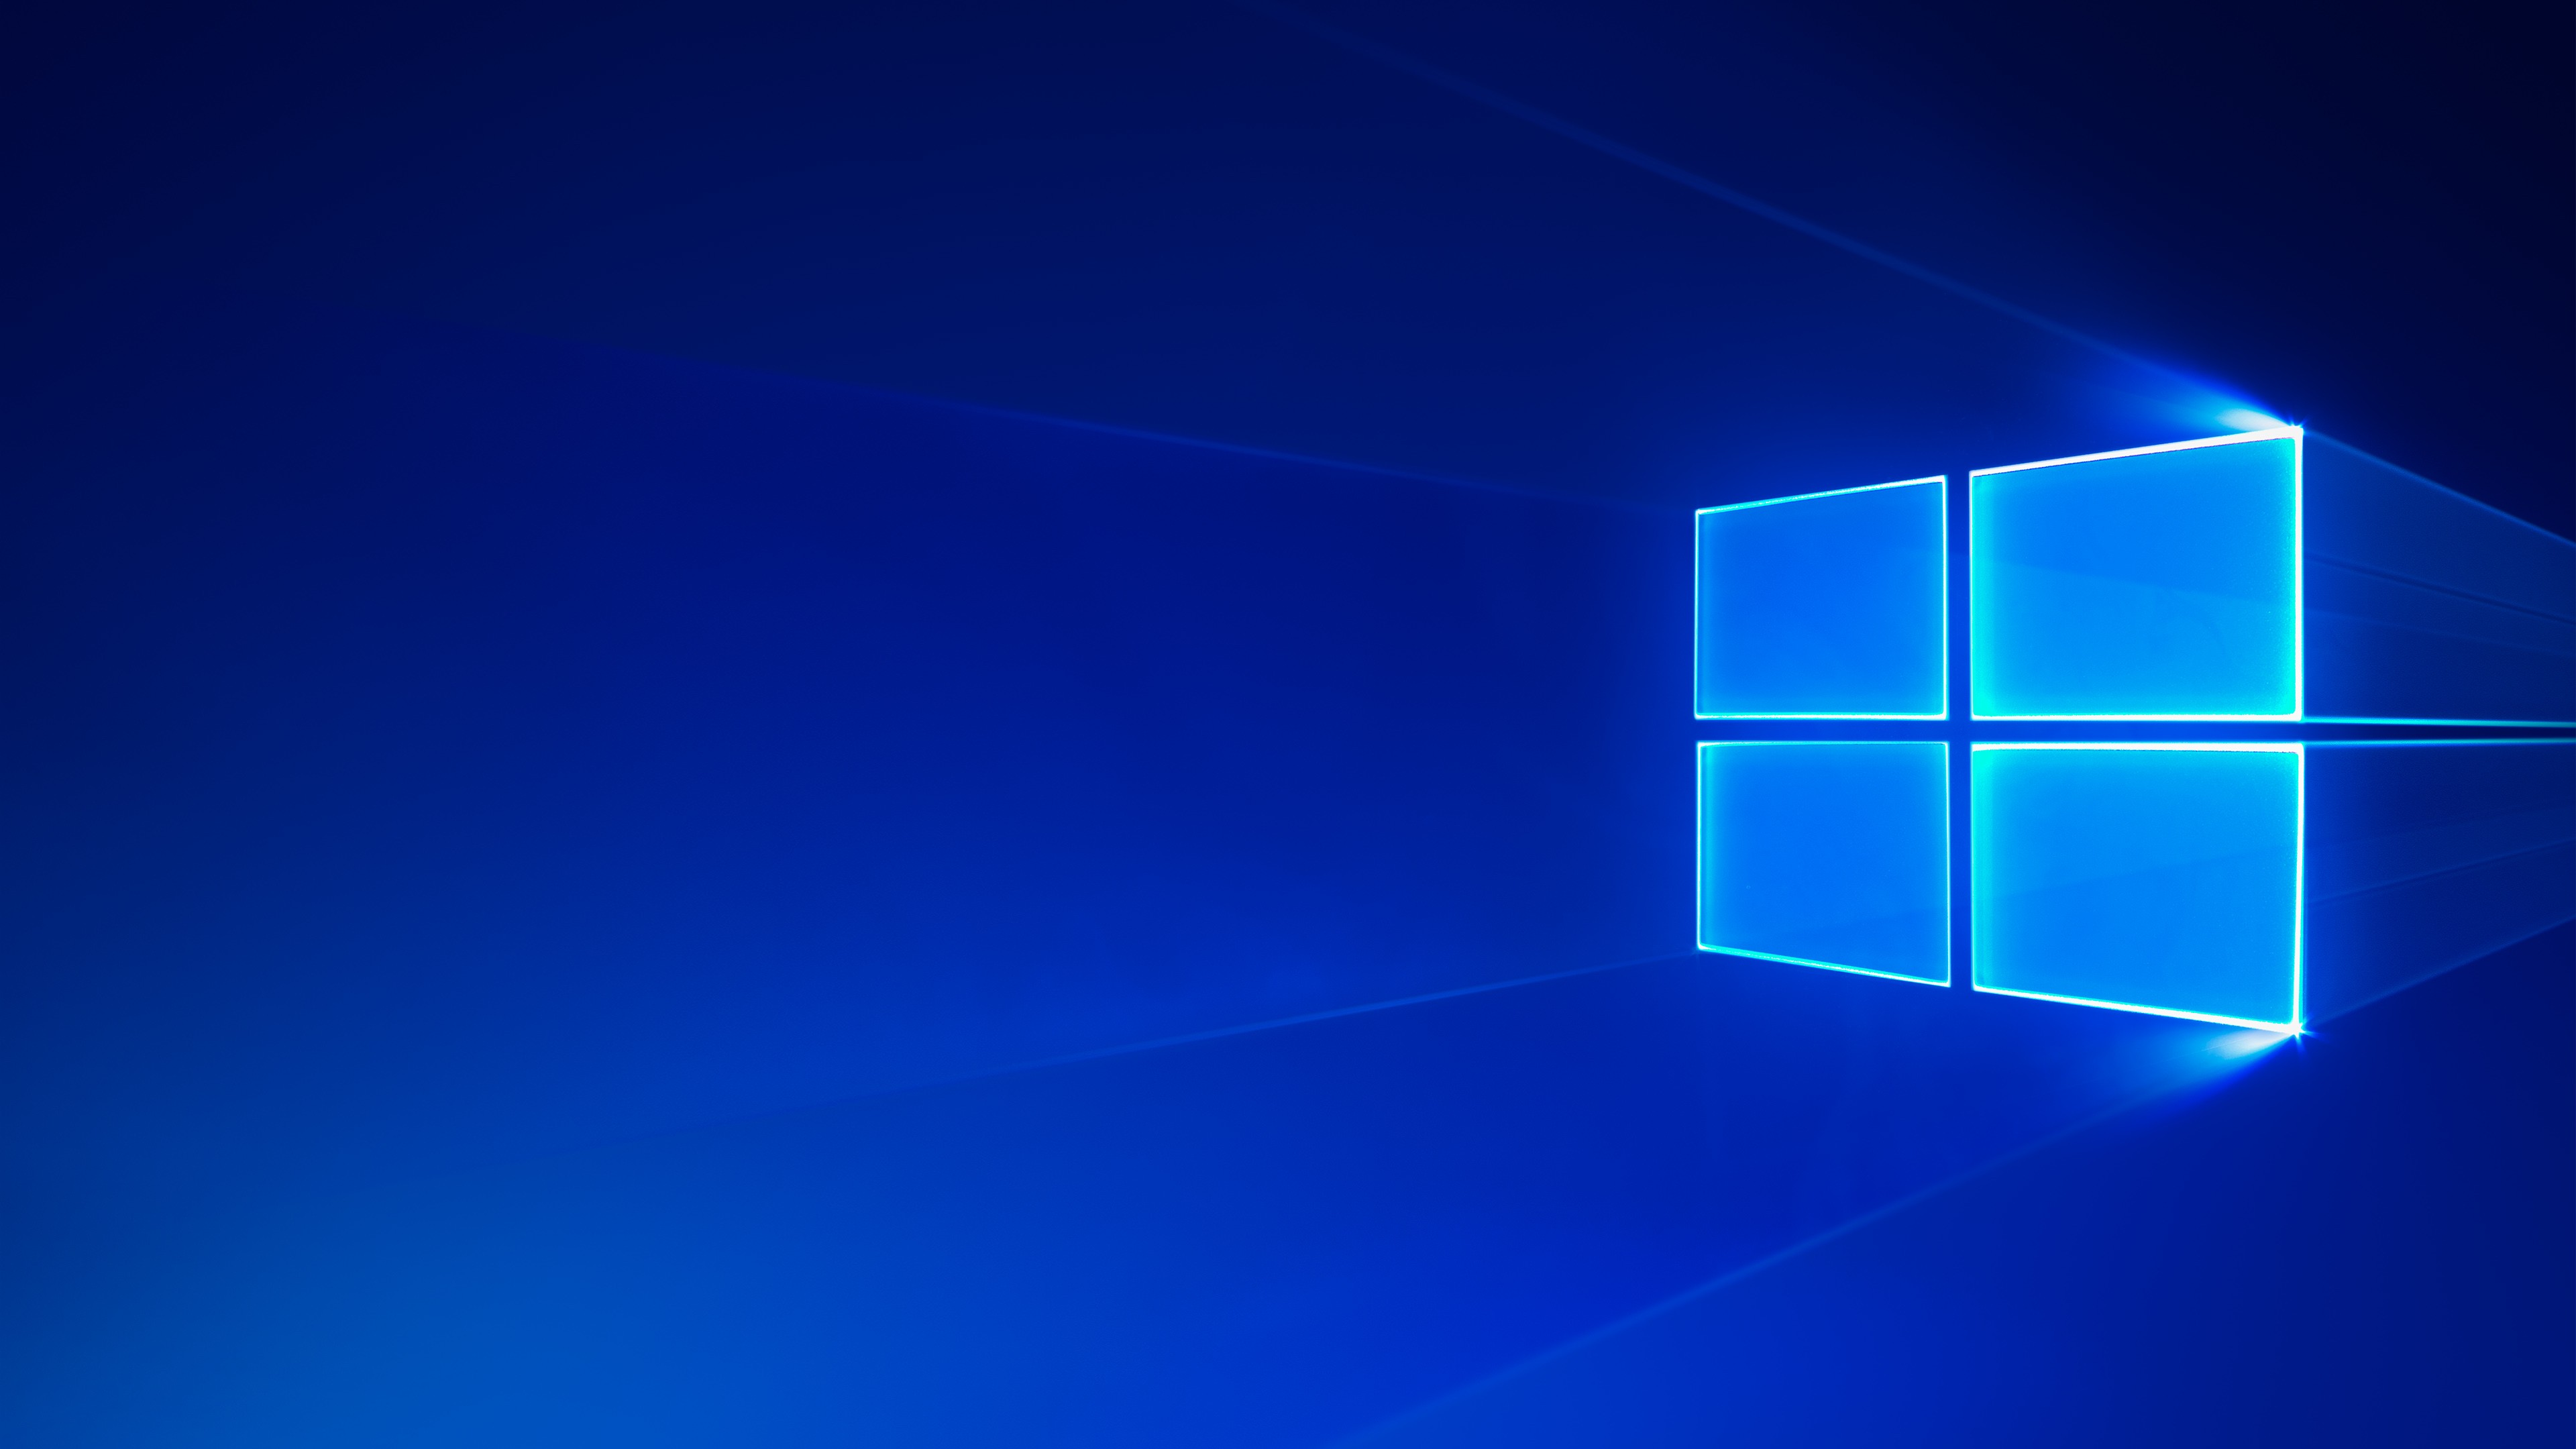 Wallpaper Windows 10 Download Free Awesome High Resolution